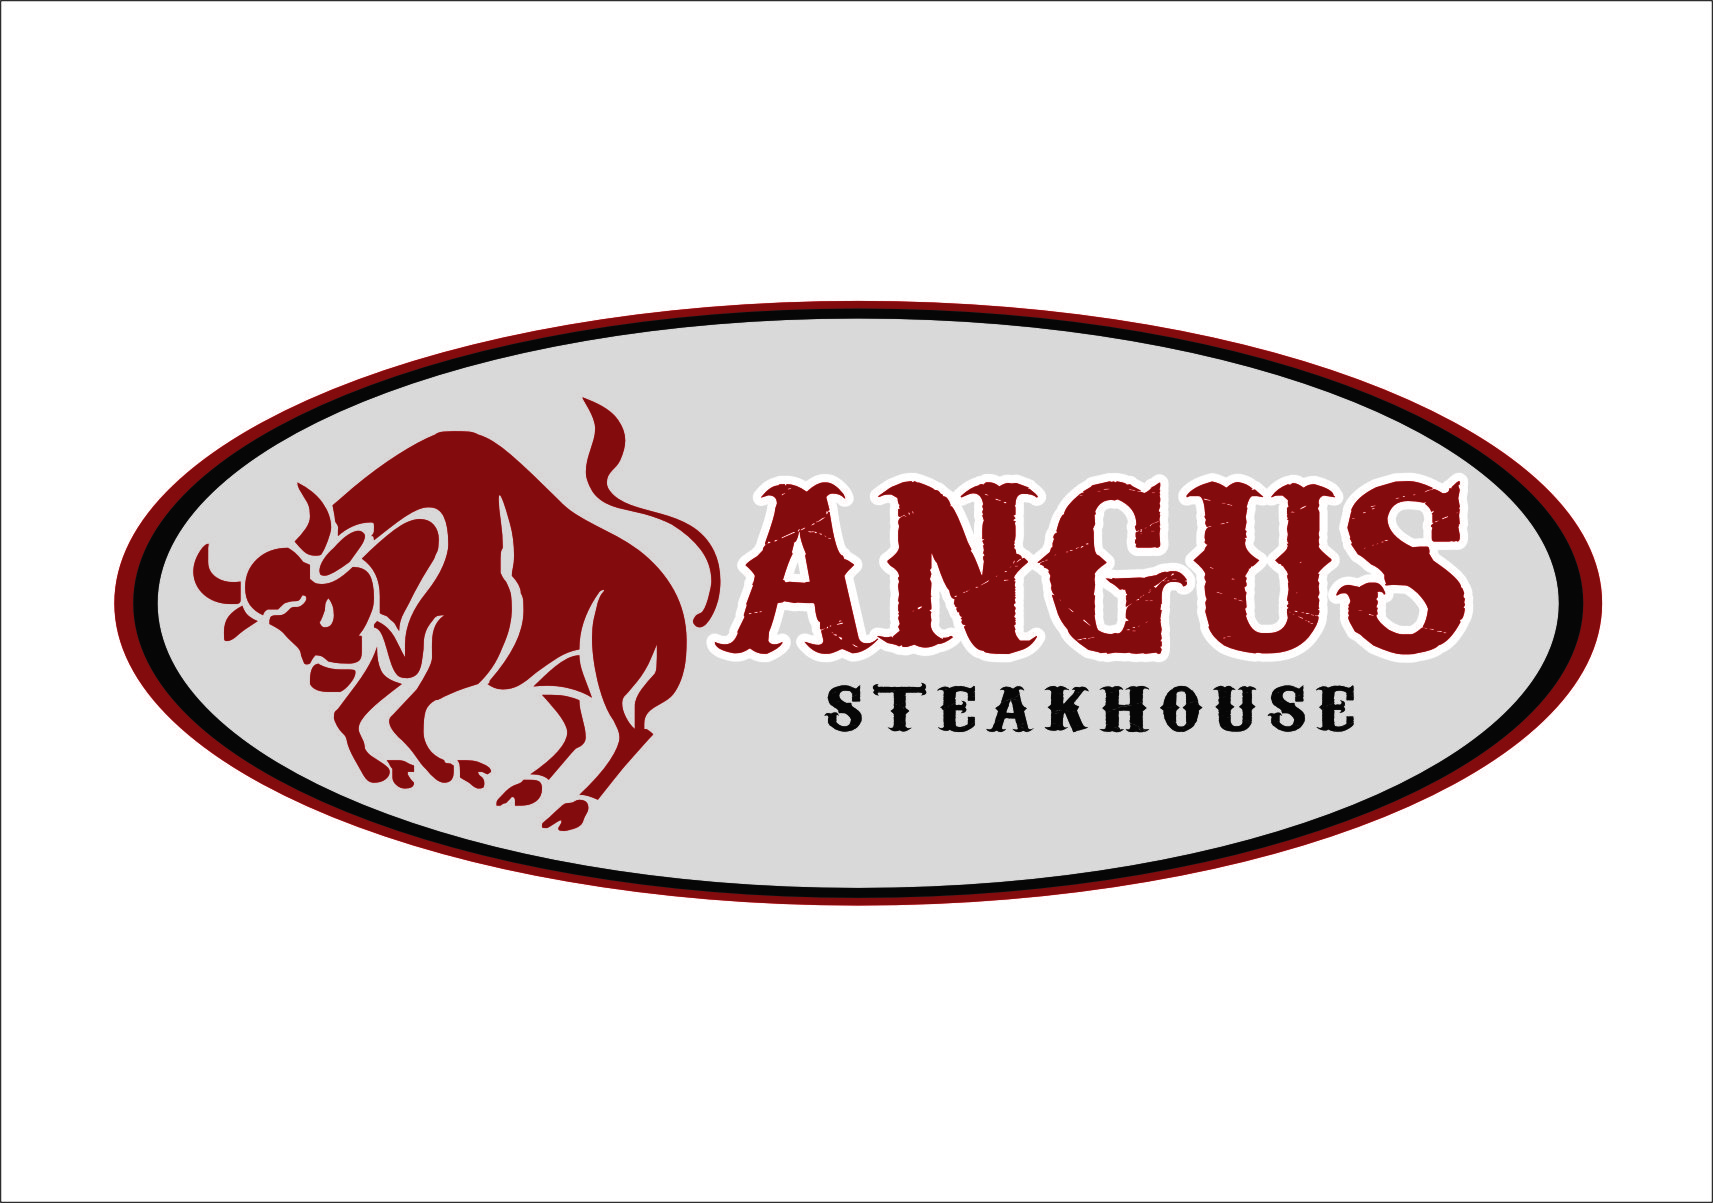 Logo Design by Ngepet_art - Entry No. 126 in the Logo Design Contest Imaginative Custom Design for Angus Steakhouse.